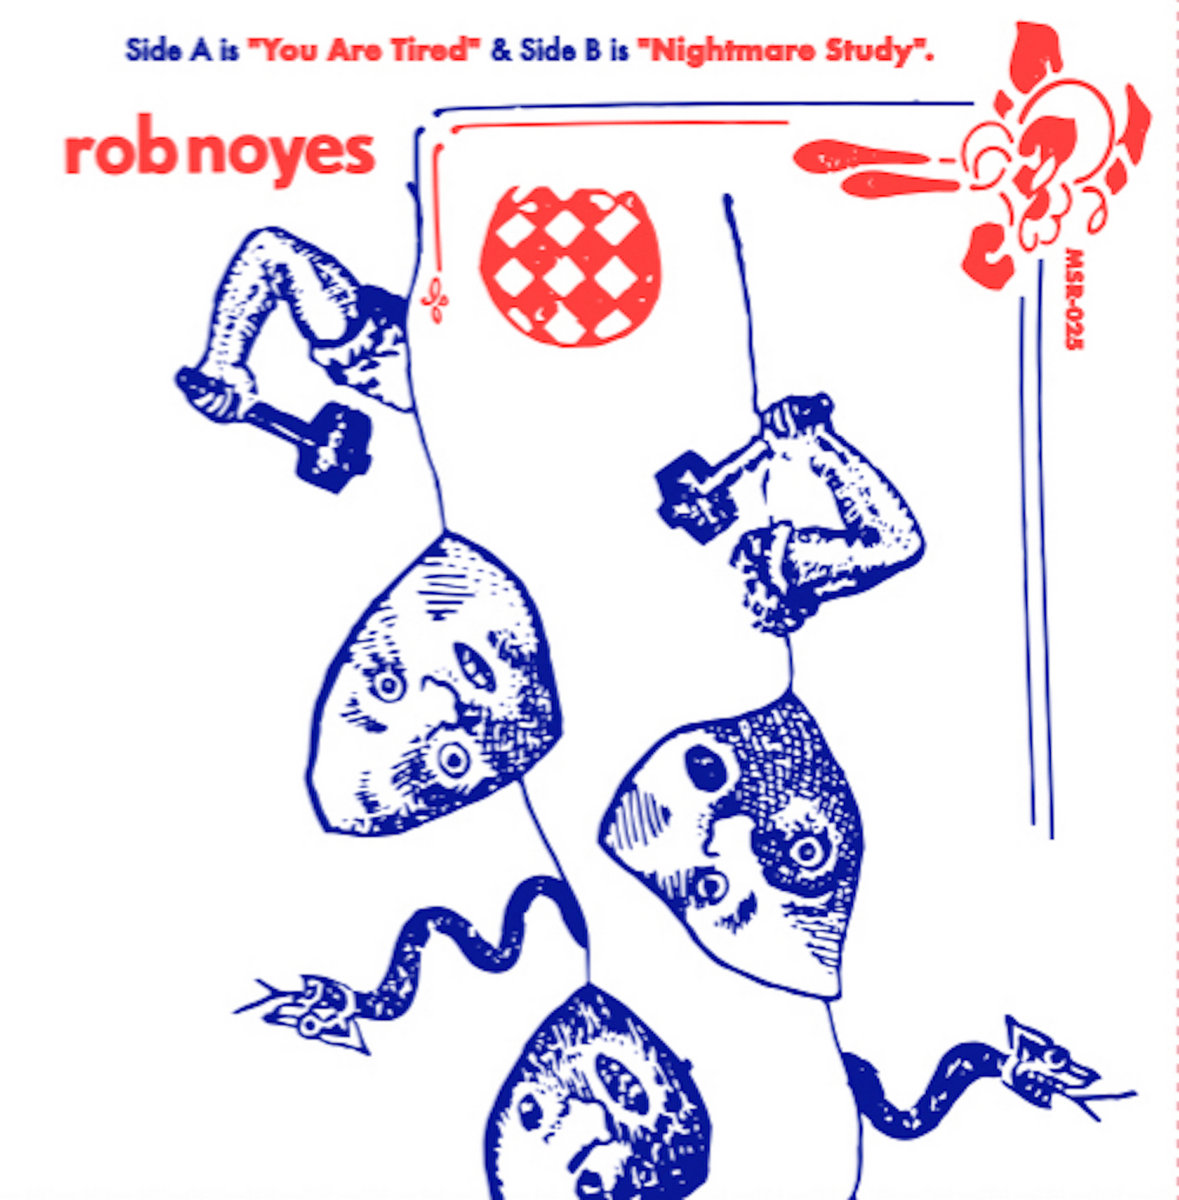 Rob Noyes - You Are Tired b/w Nightmare Study | Market